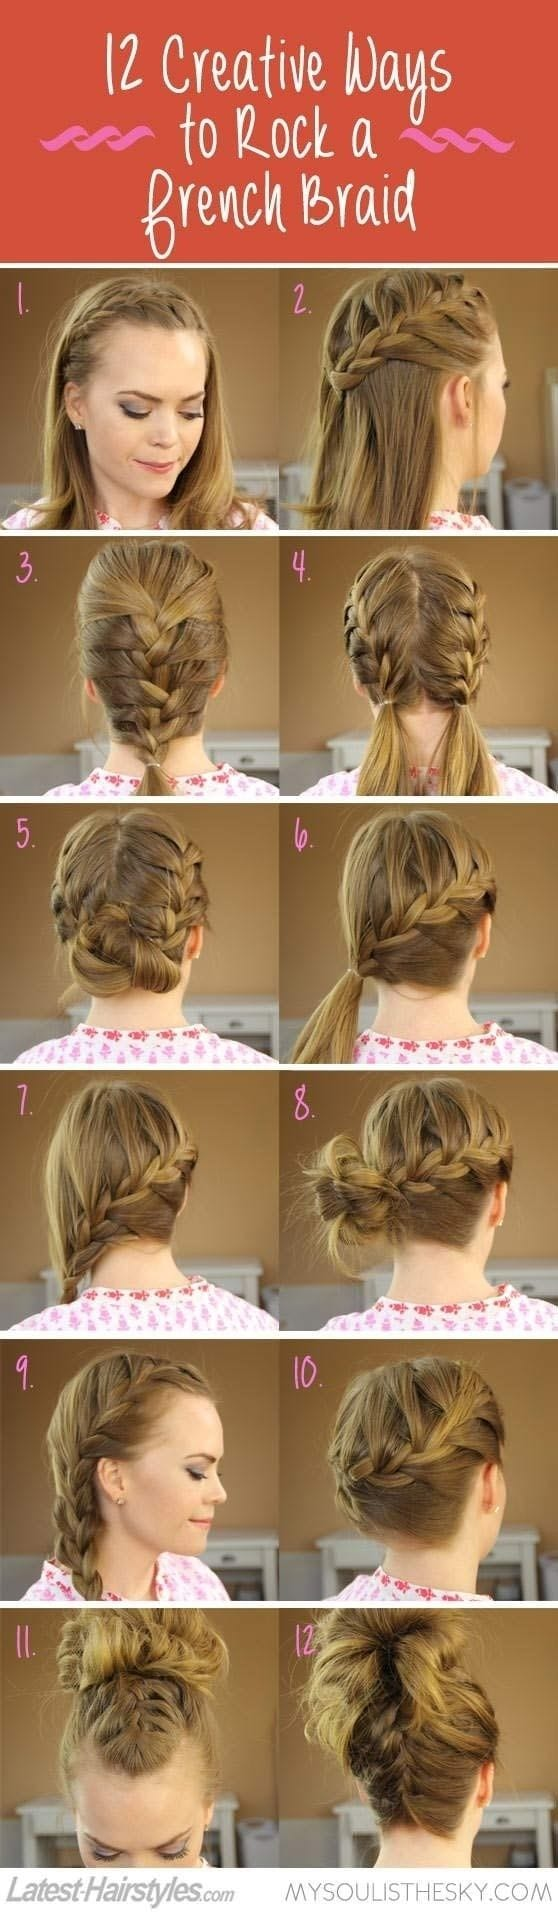 Braided-Hairstyles-Tutorials 20 Cute and Easy Braided Hairstyle Tutorials